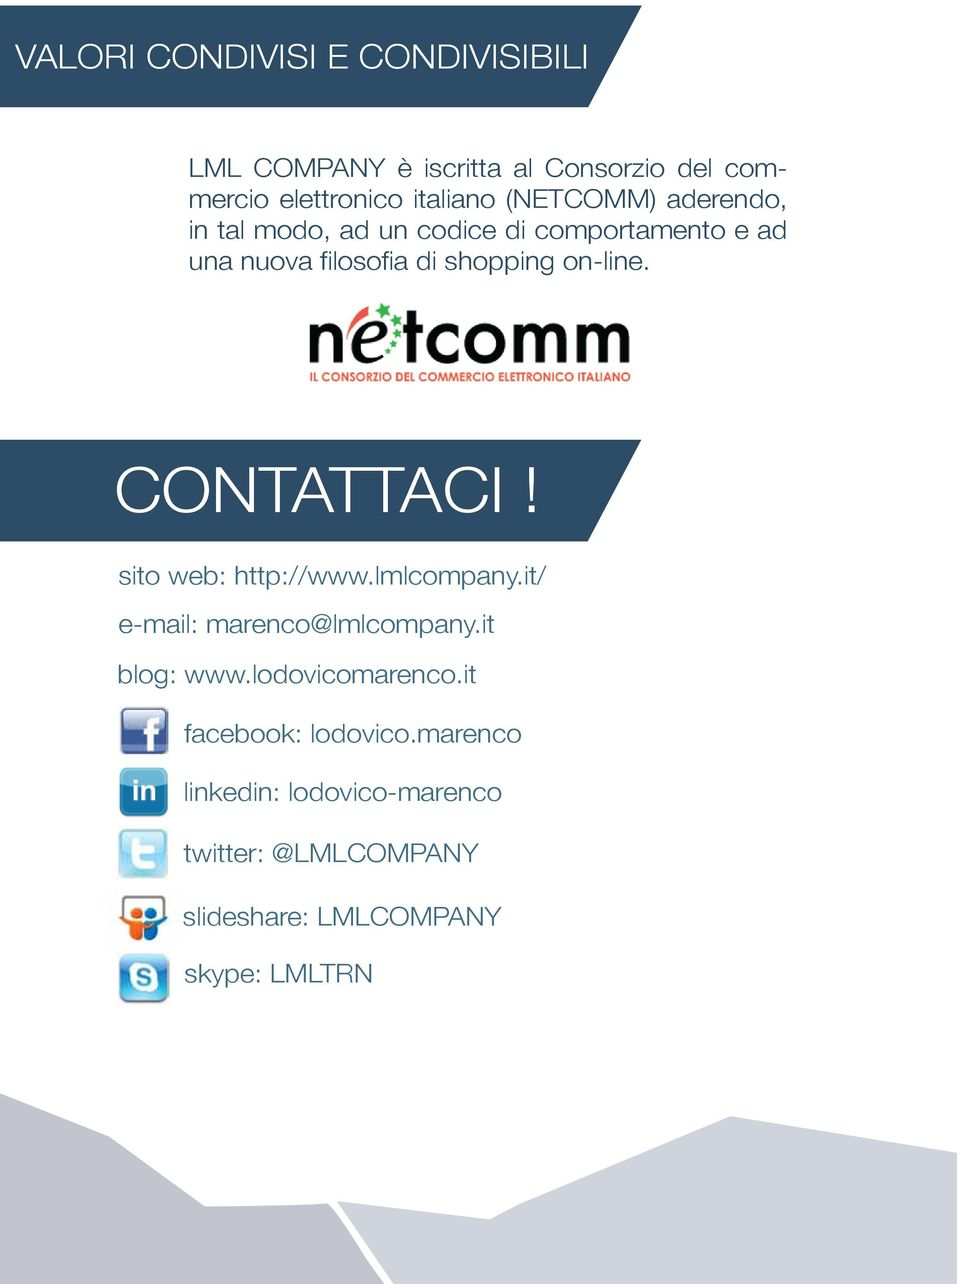 CONTATTACI! sito web: http://www.lmlcompany.it/ e-mail: marenco@lmlcompany.it blog: www.lodovicomarenco.